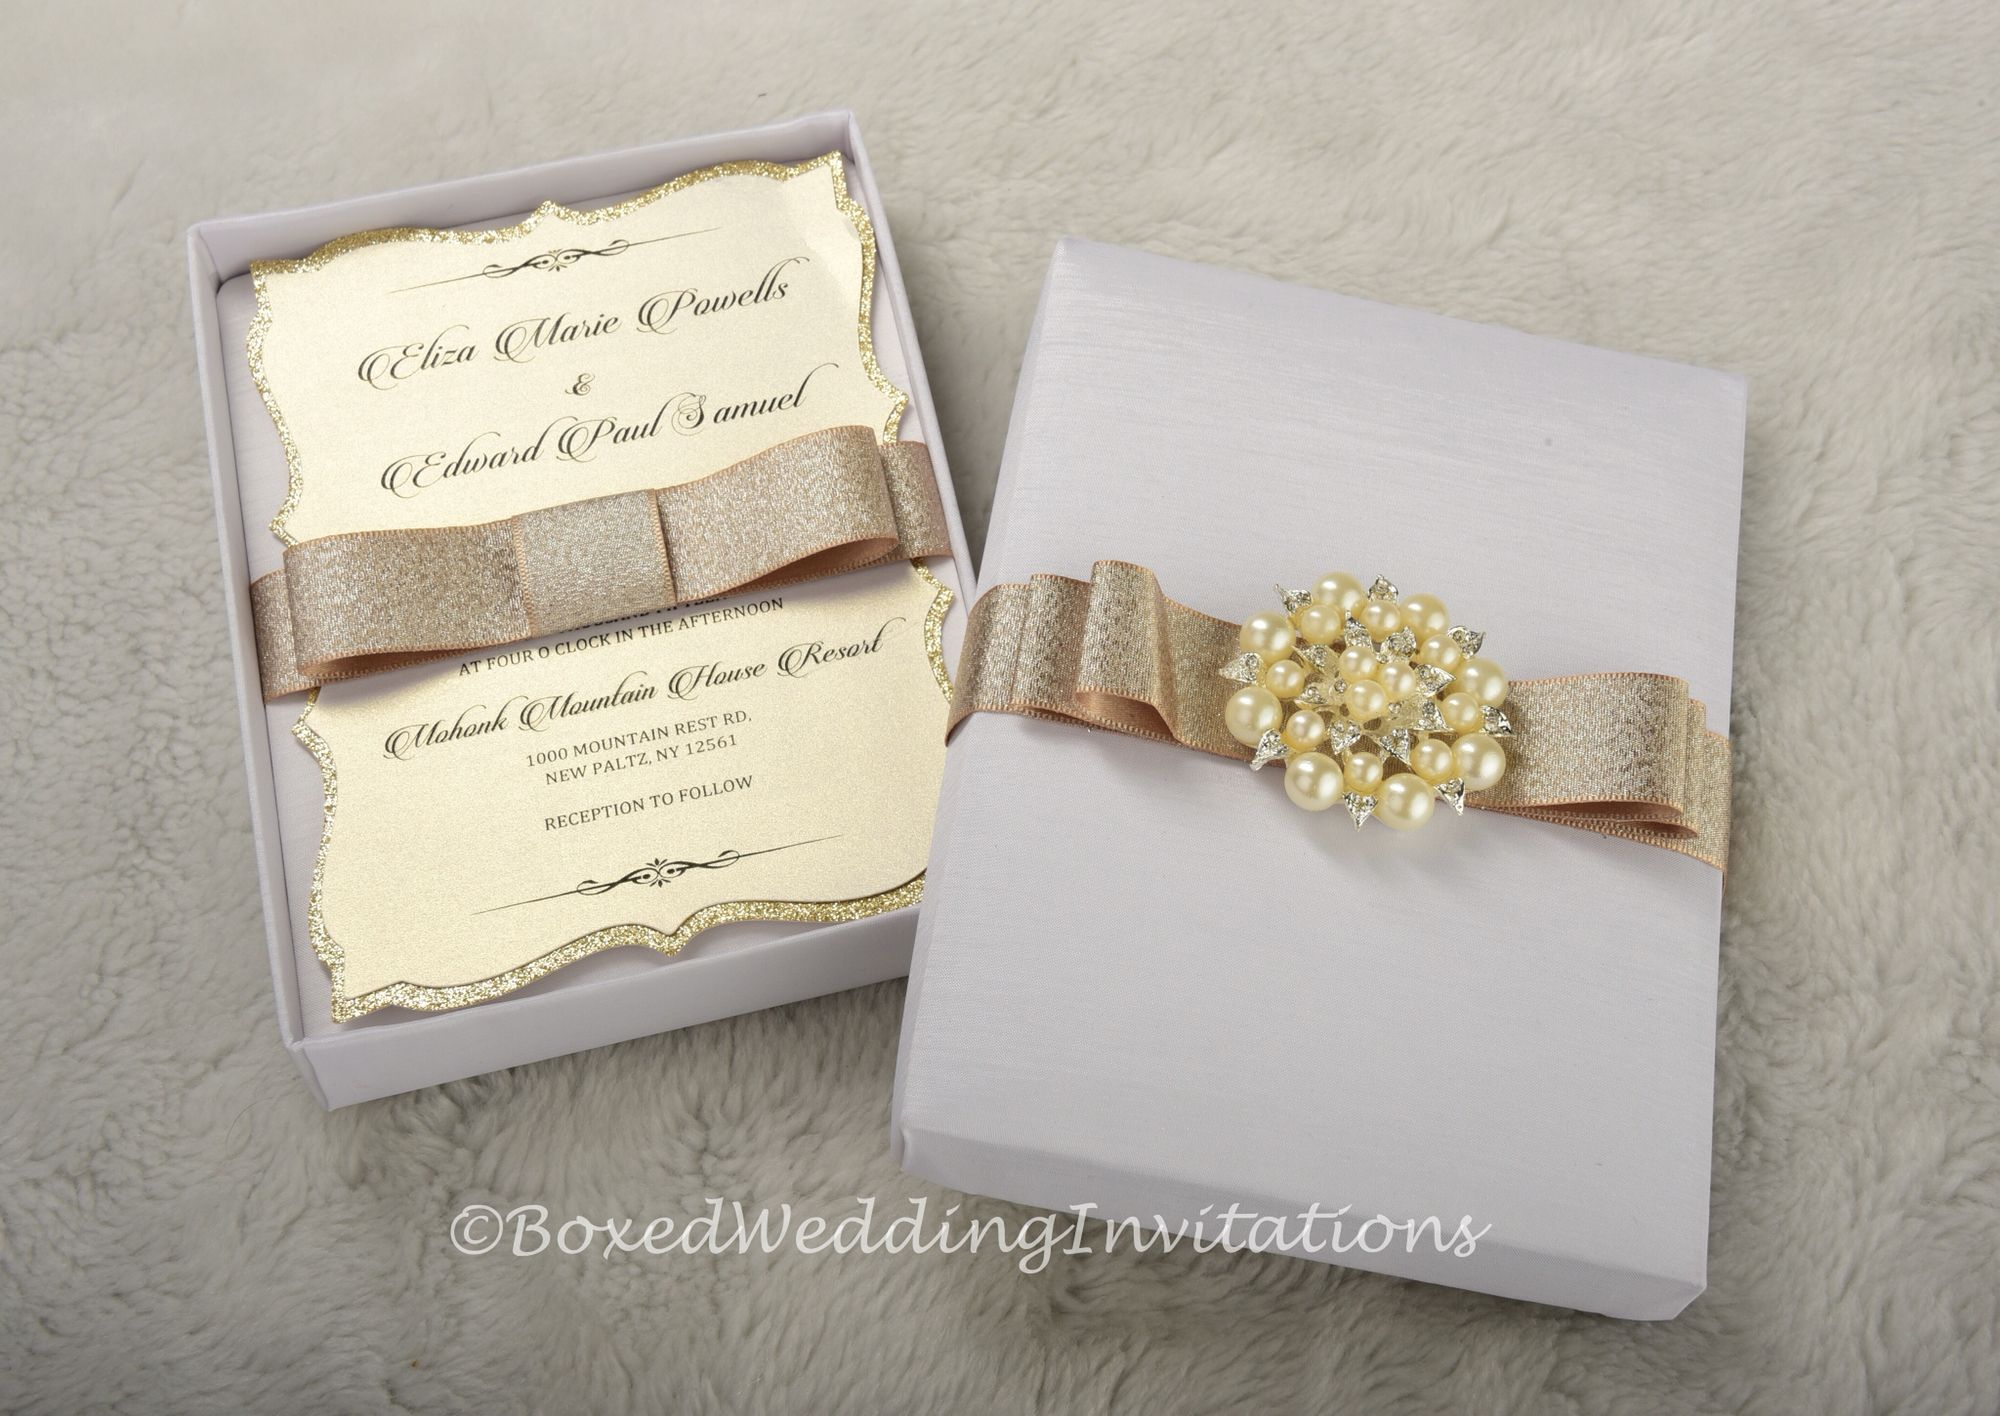 ✨Invitation box and invitation card in nuances of white and gold ...